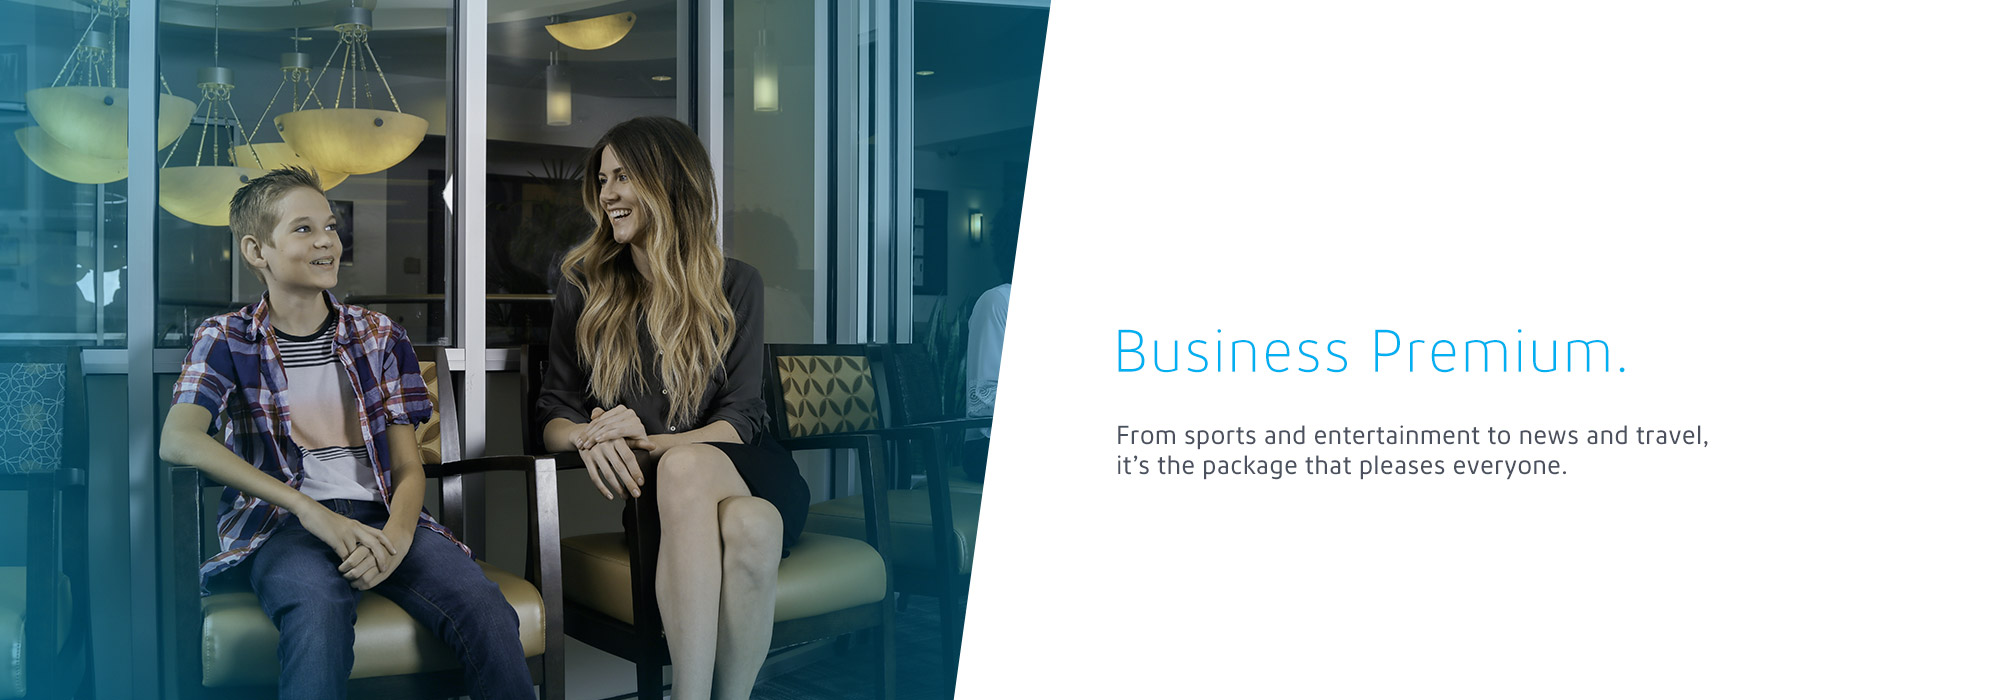 Business Premium: From sports and entertainment to news and travel, it's the package that pleases everyone.